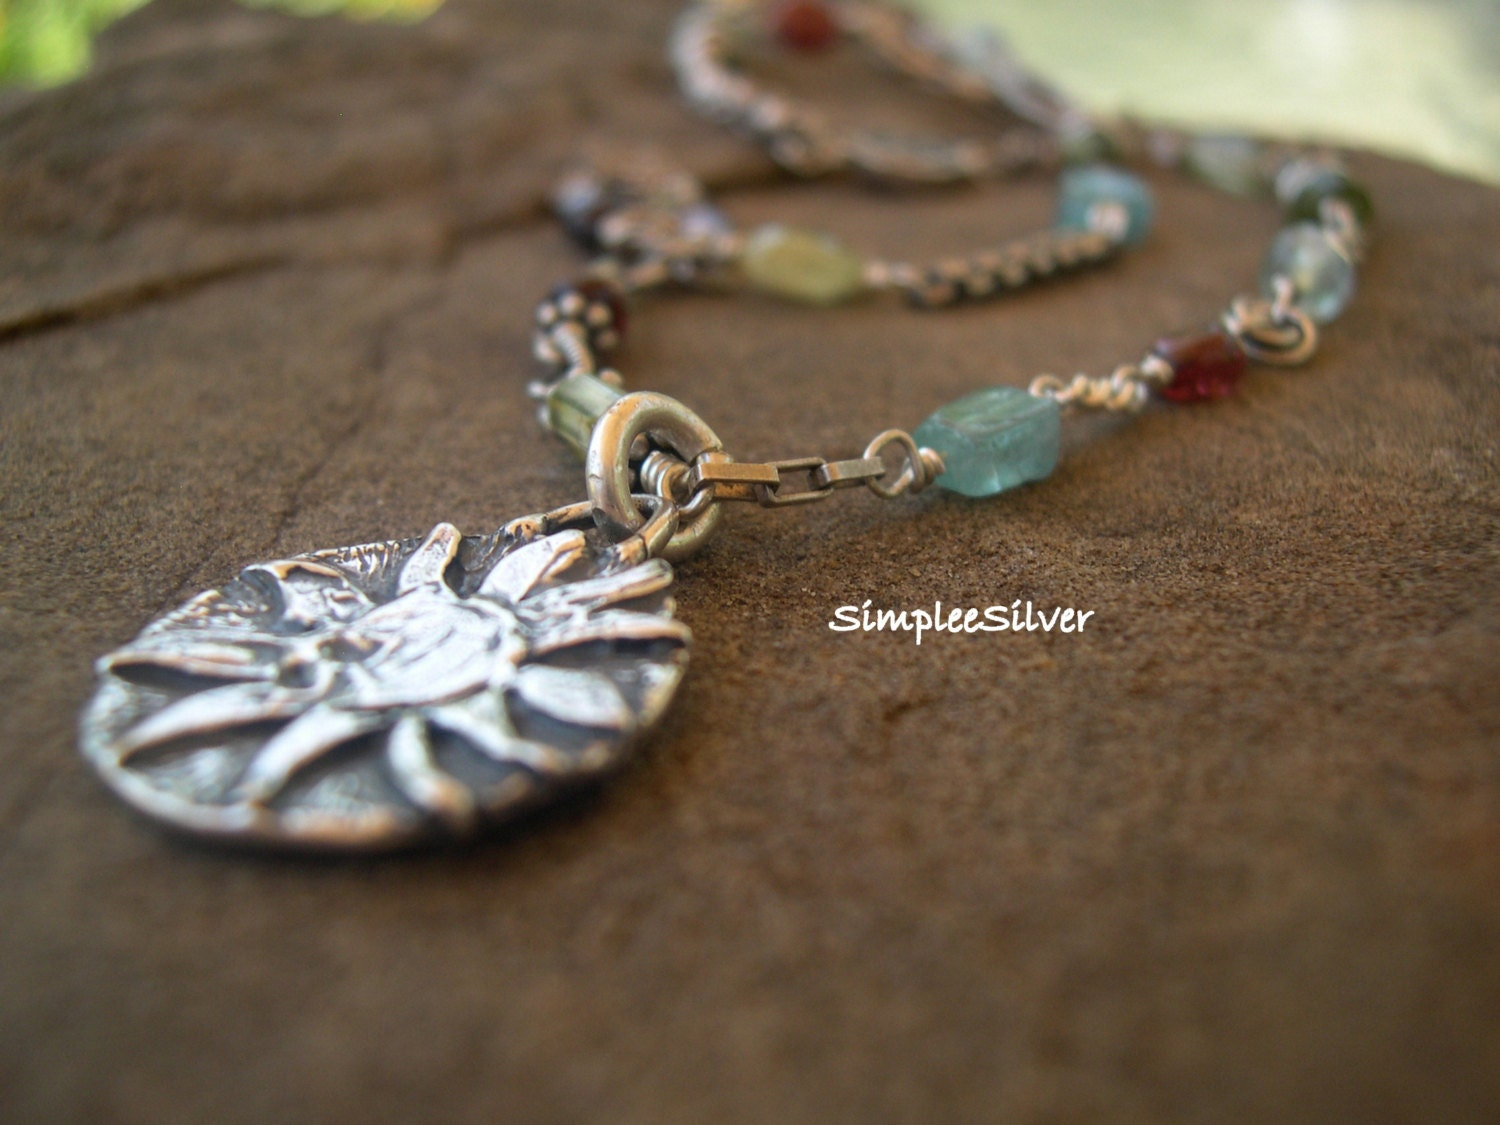 TURQUOISE PENDANT 925 STERLING SILVER ARTISAN JEWELRY ...  |Newest Silver Artisan Jewelry